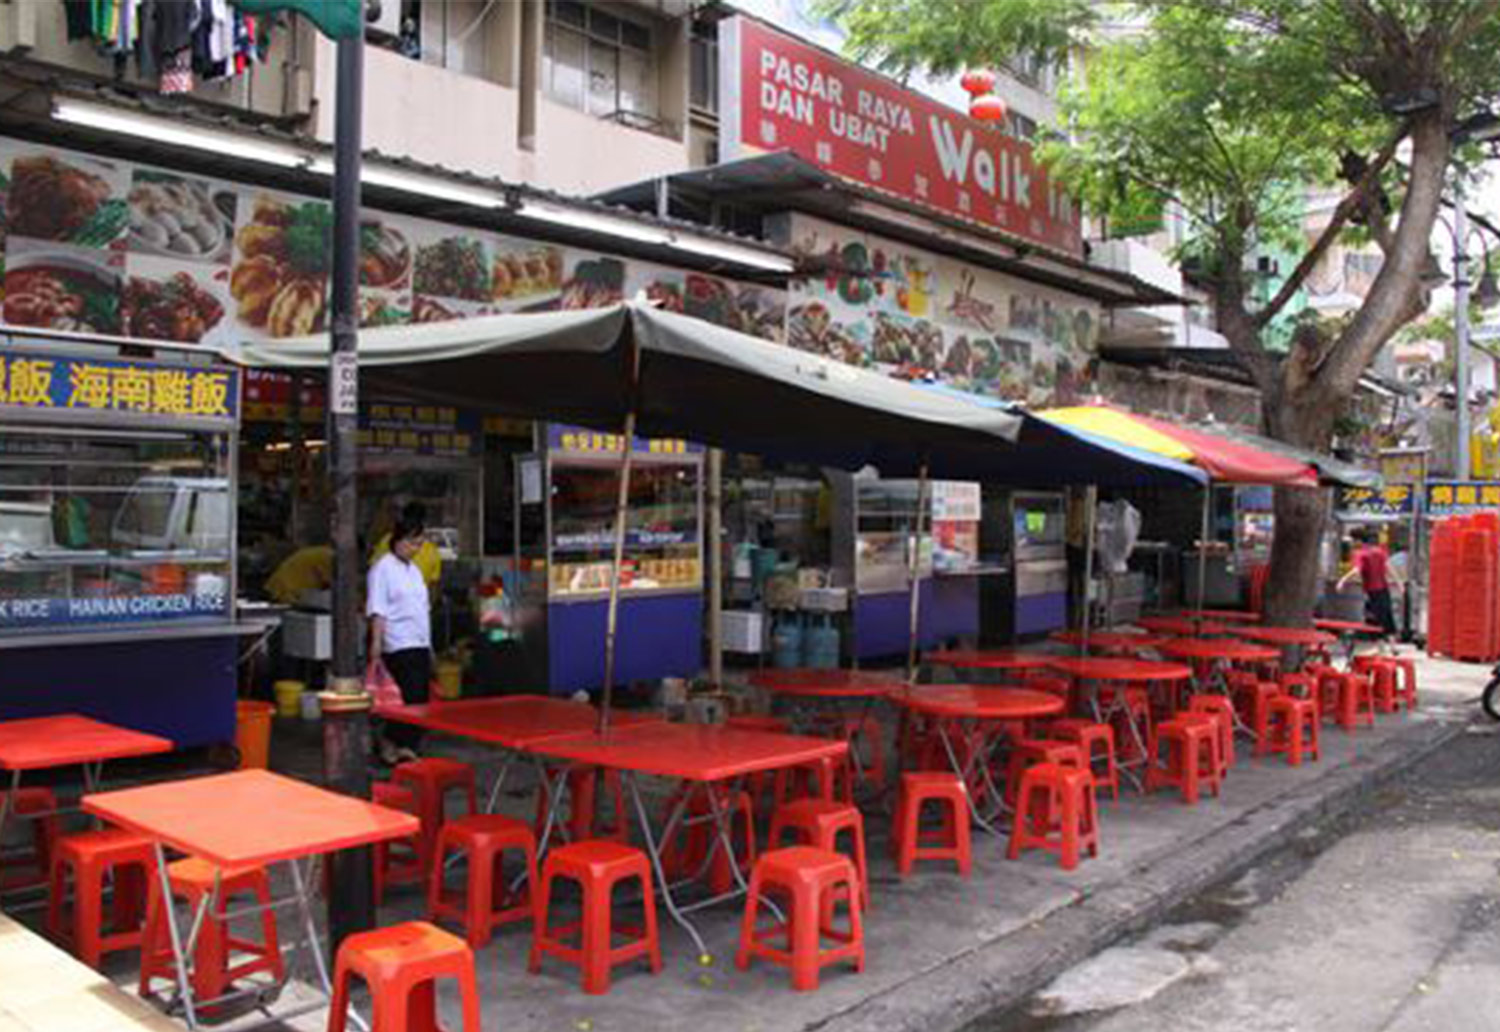 Image of road food stalls in Malaysia